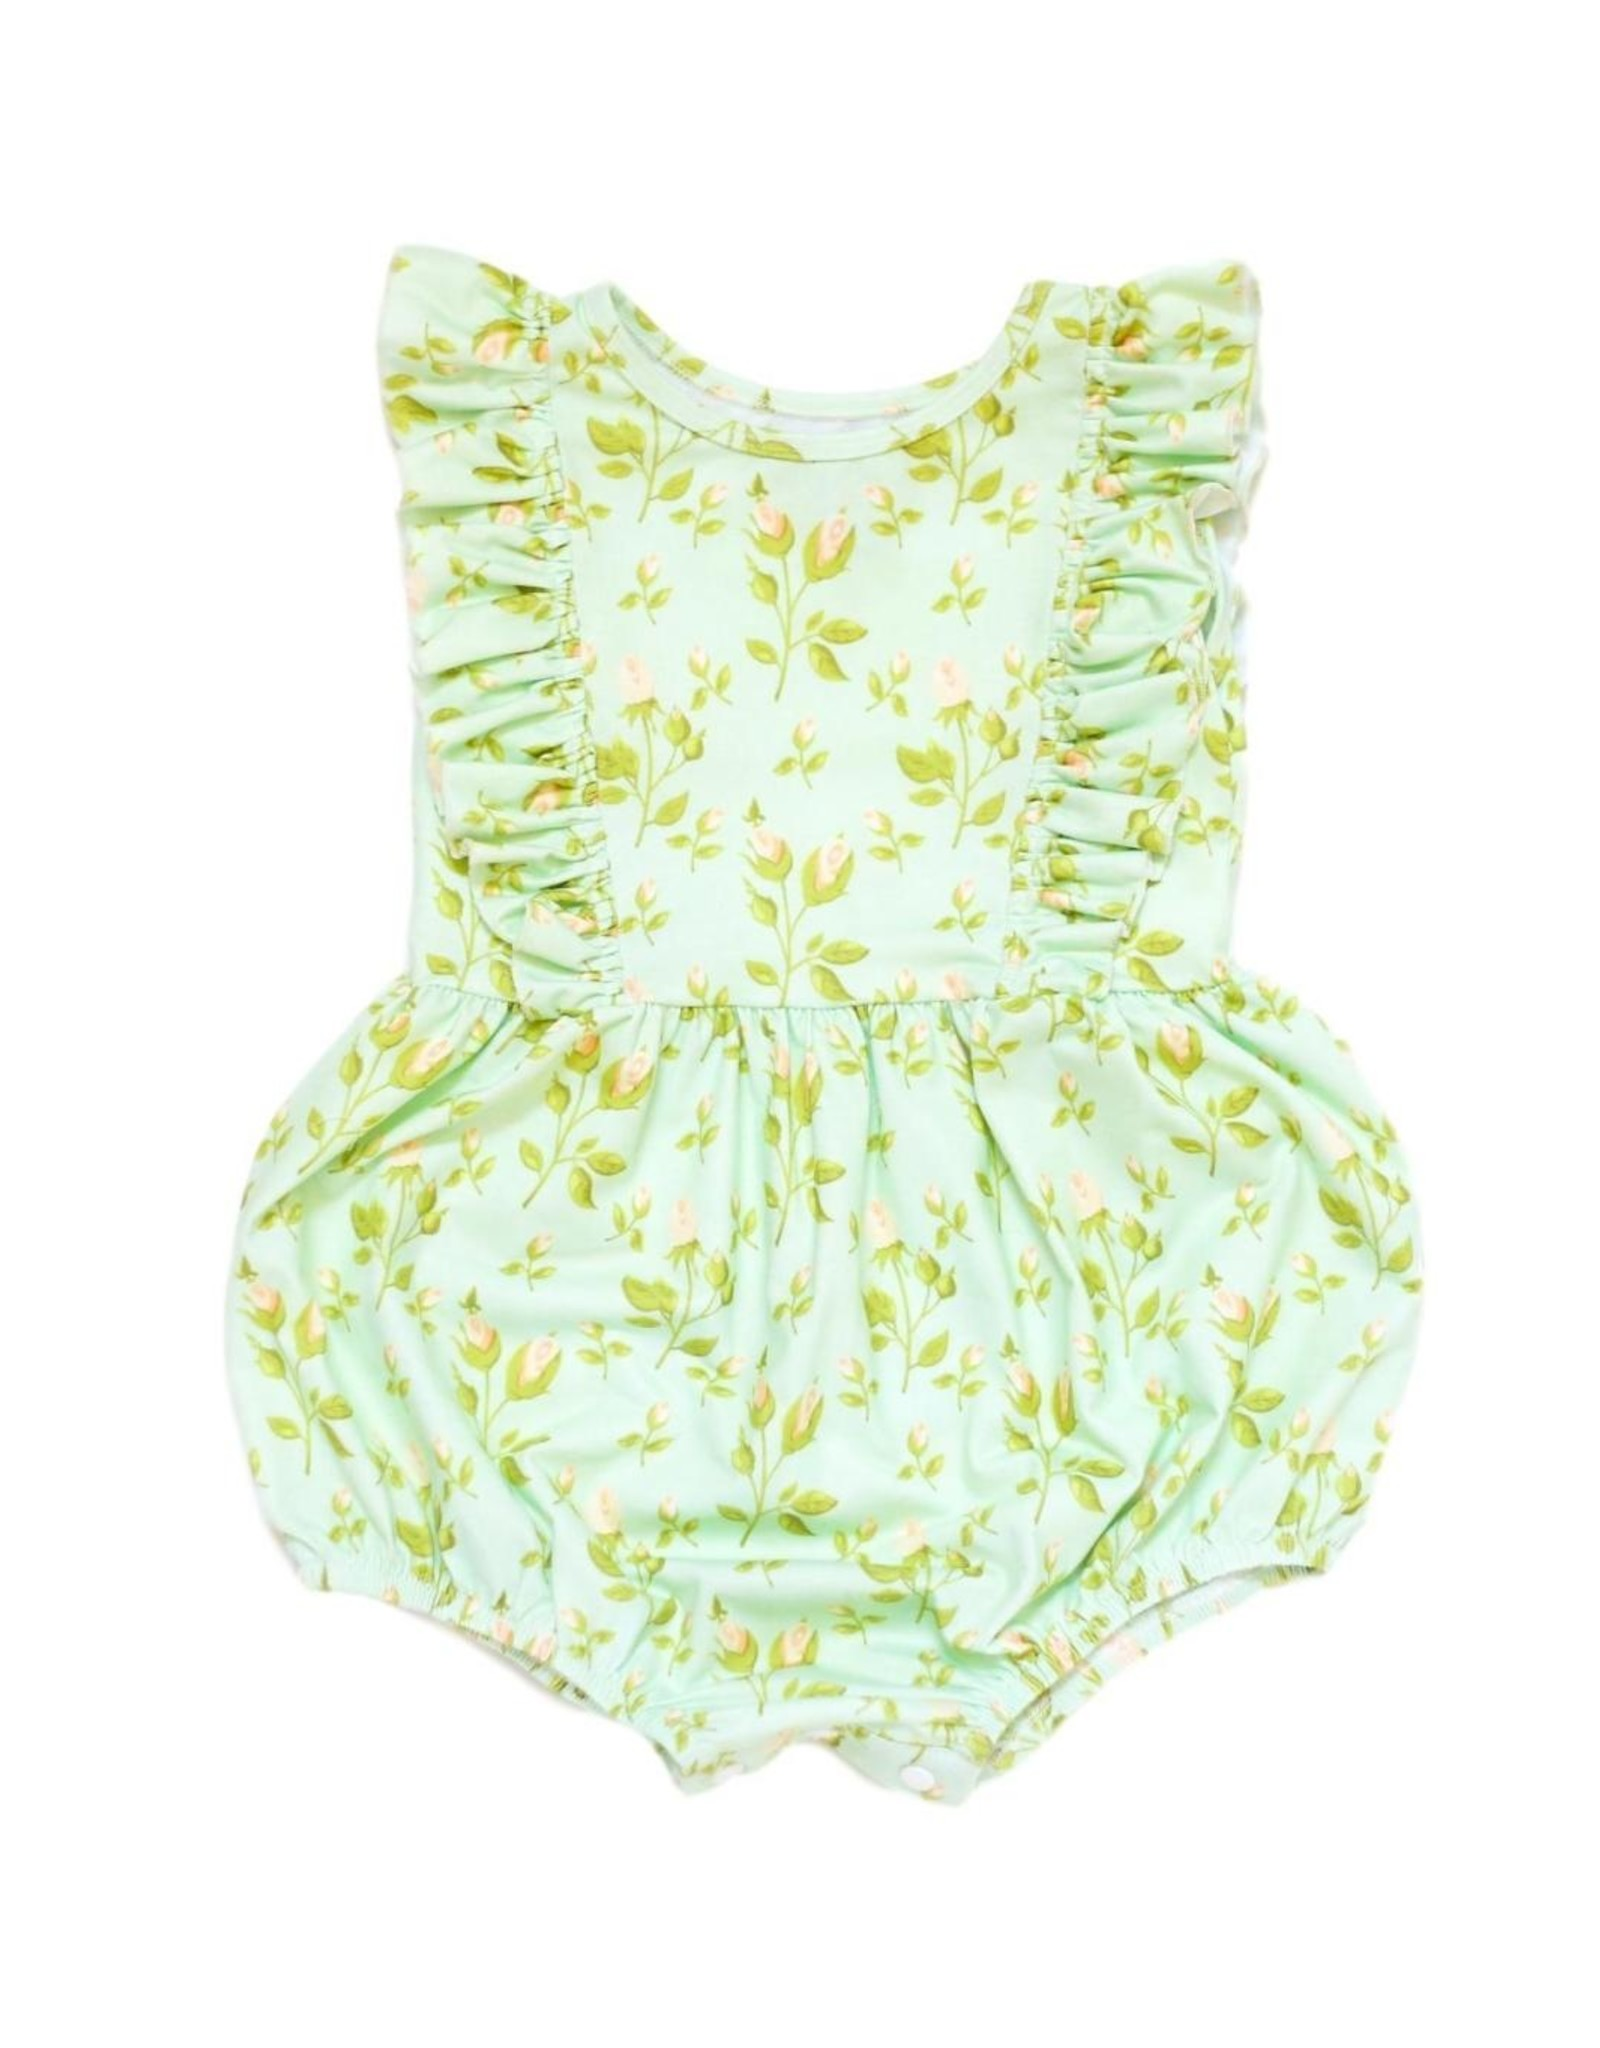 Be Girl Playsuit Bubble Romper - Mint Buds